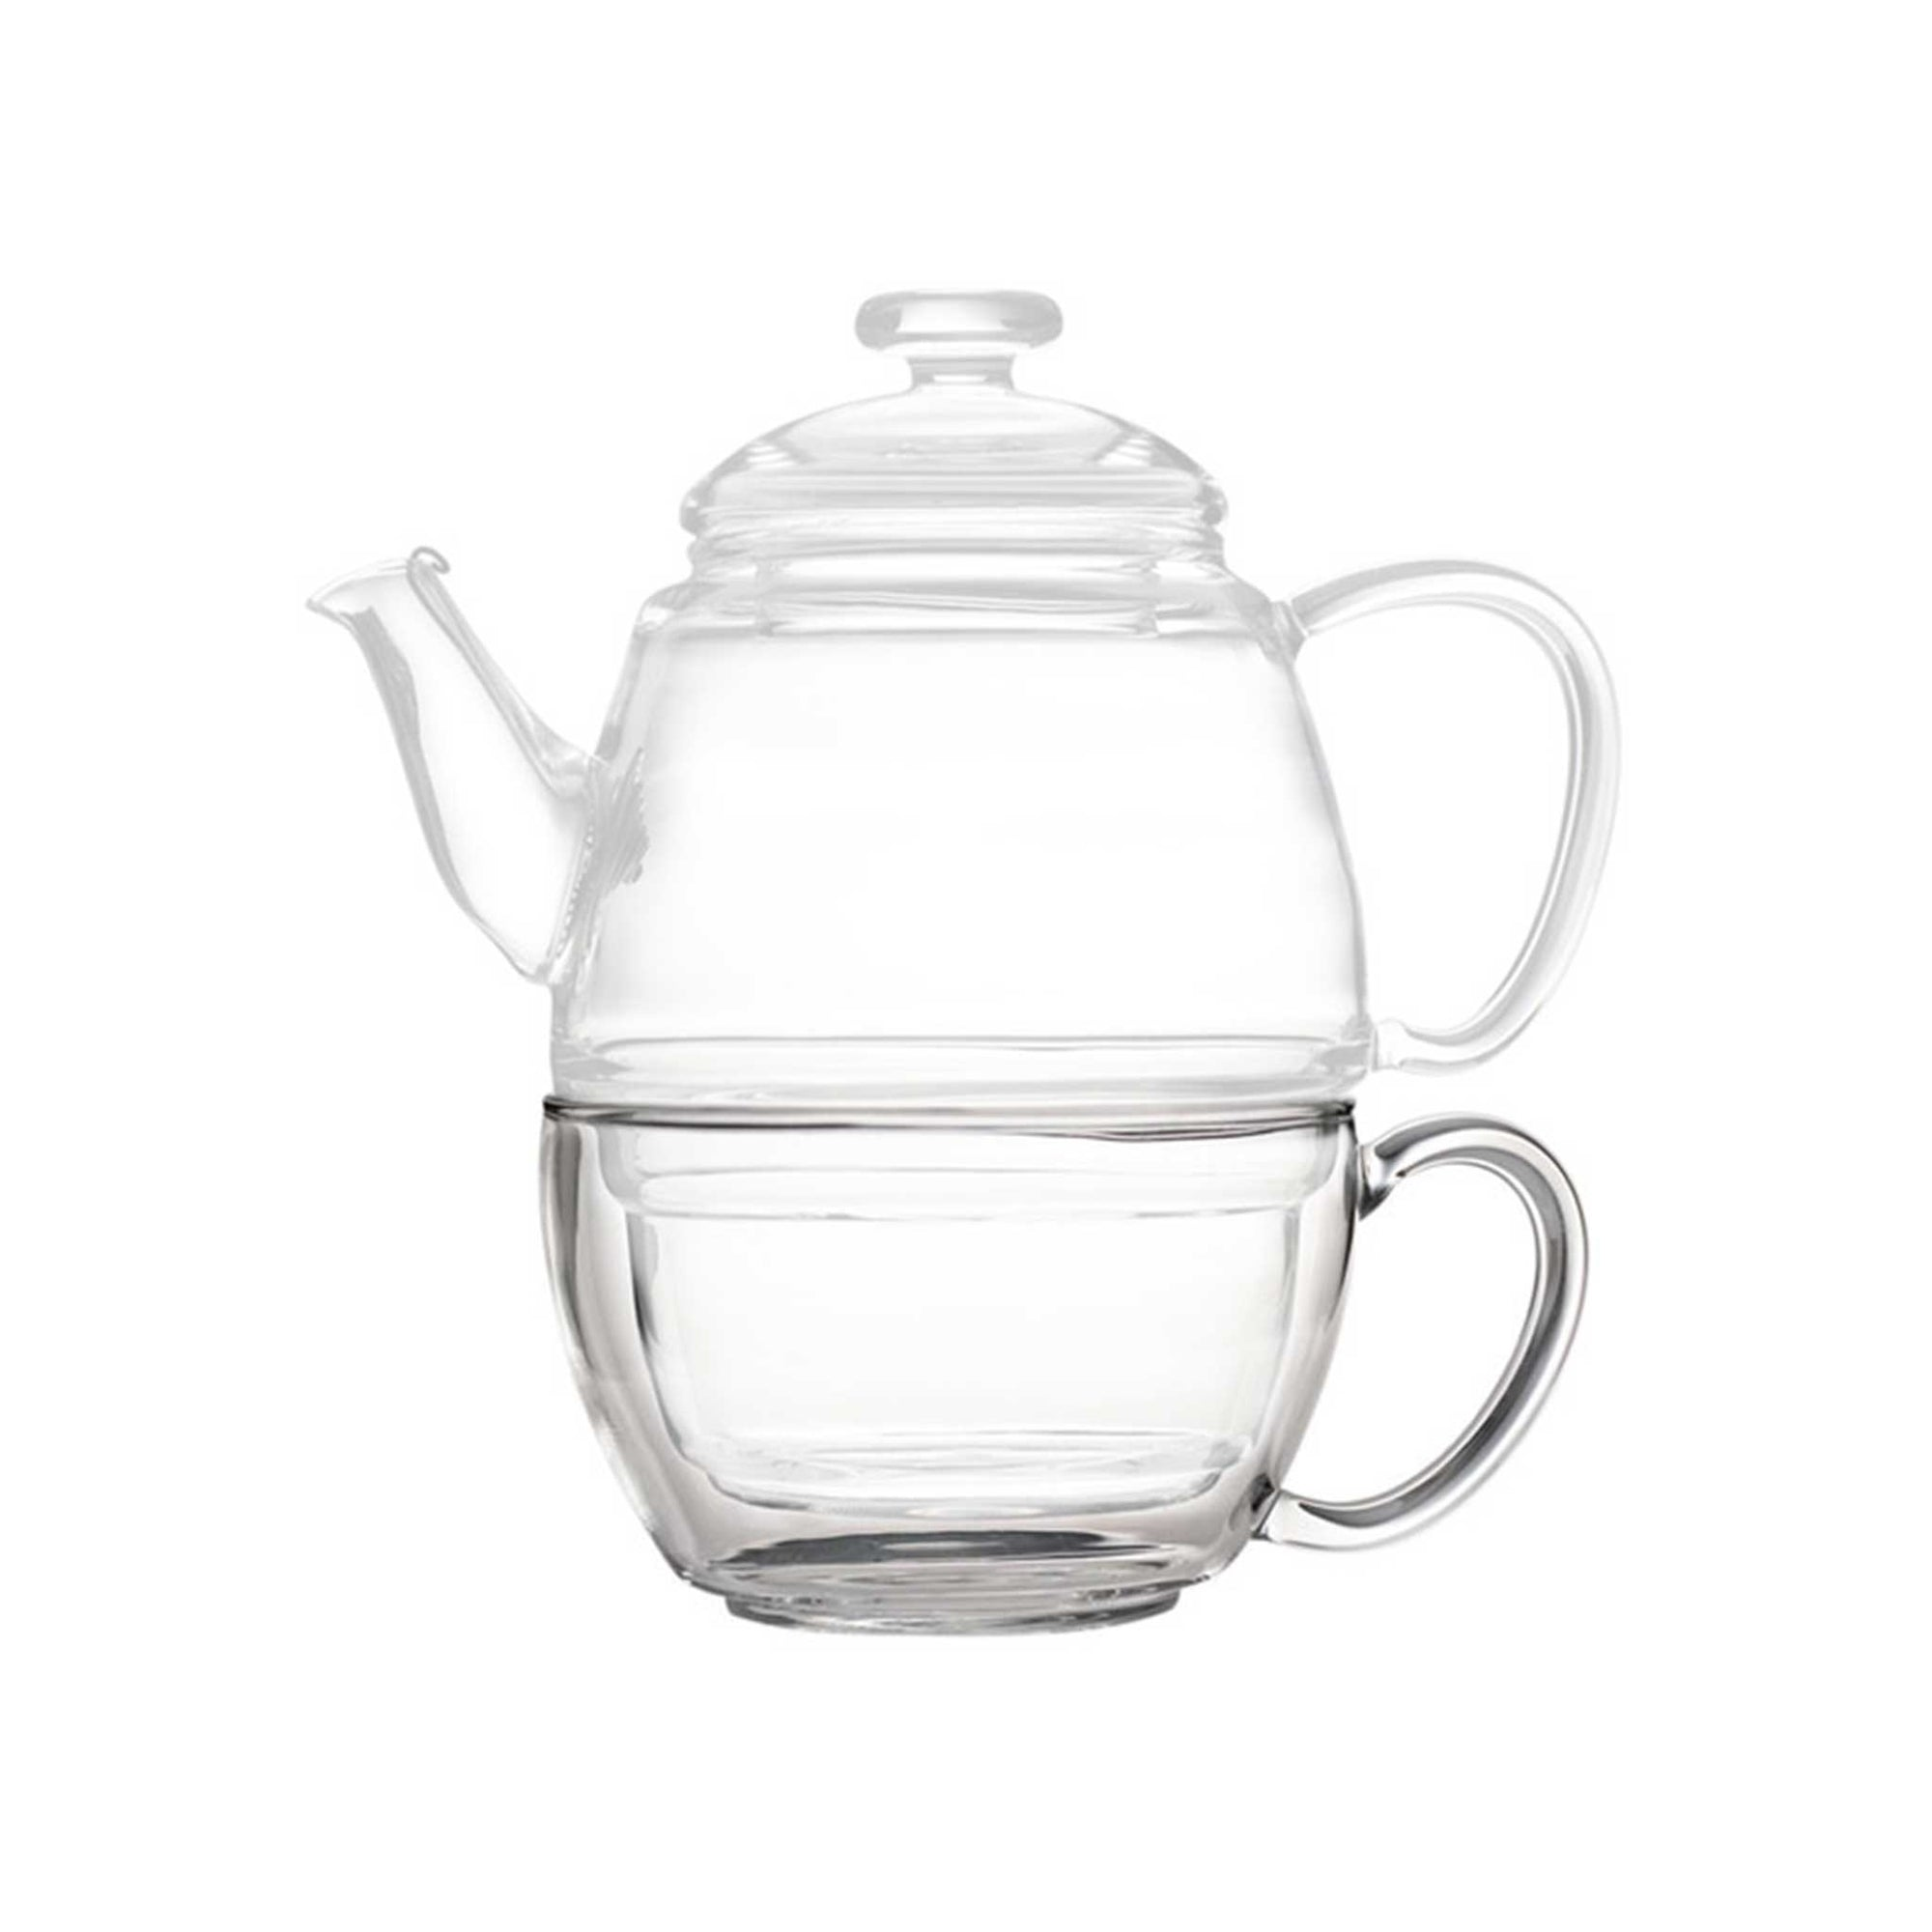 Glass tea cup replacment for the Teaposy charme posy gift set